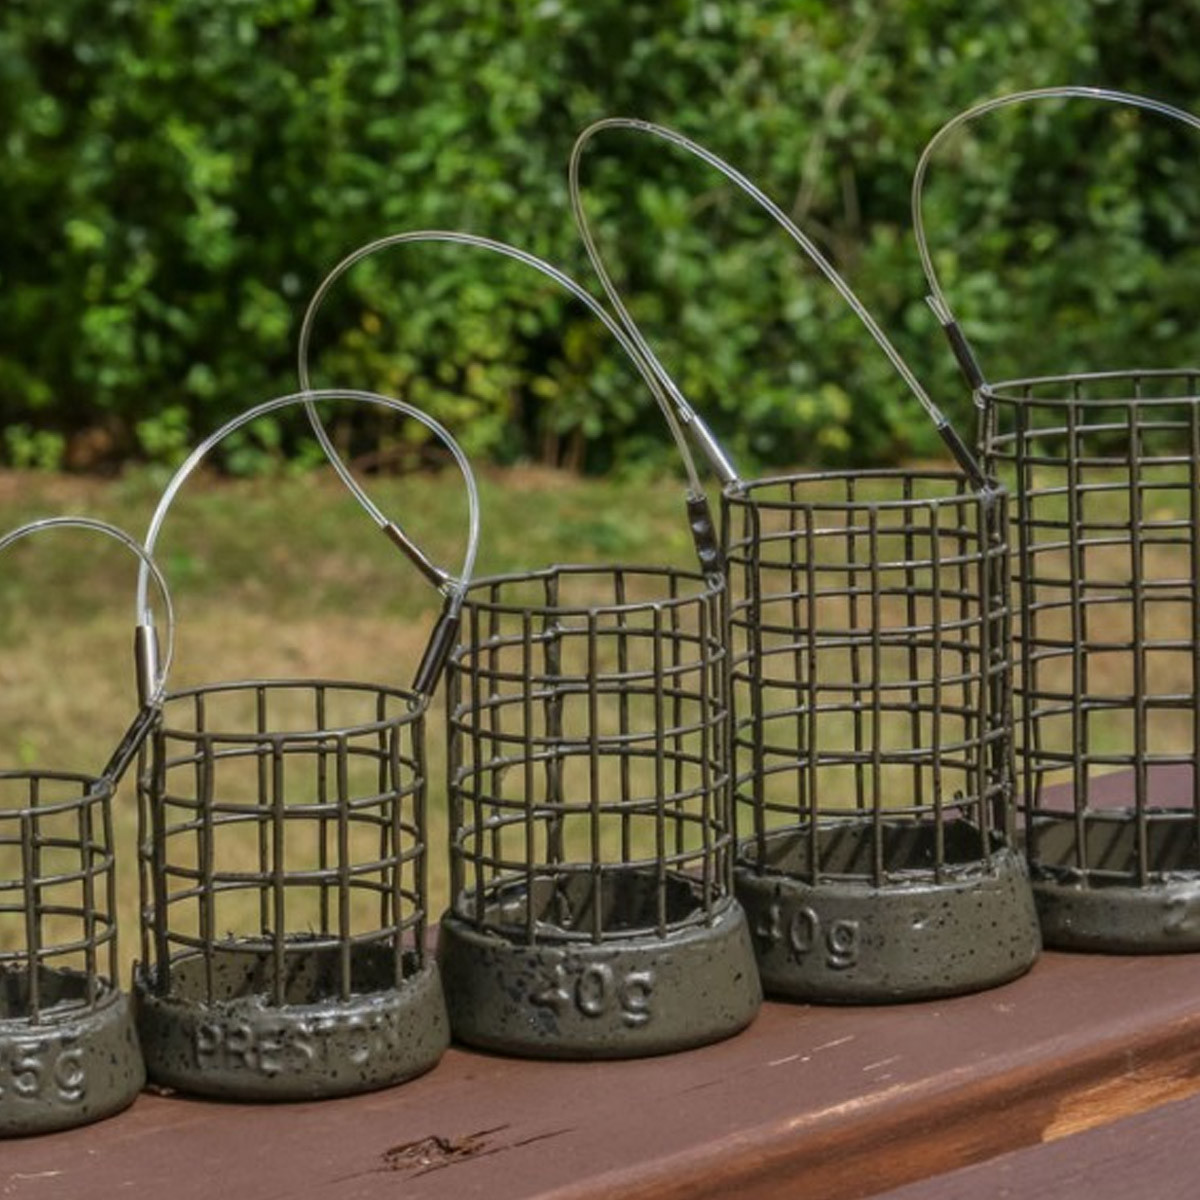 Preston Innovations Distance Cage Feeders